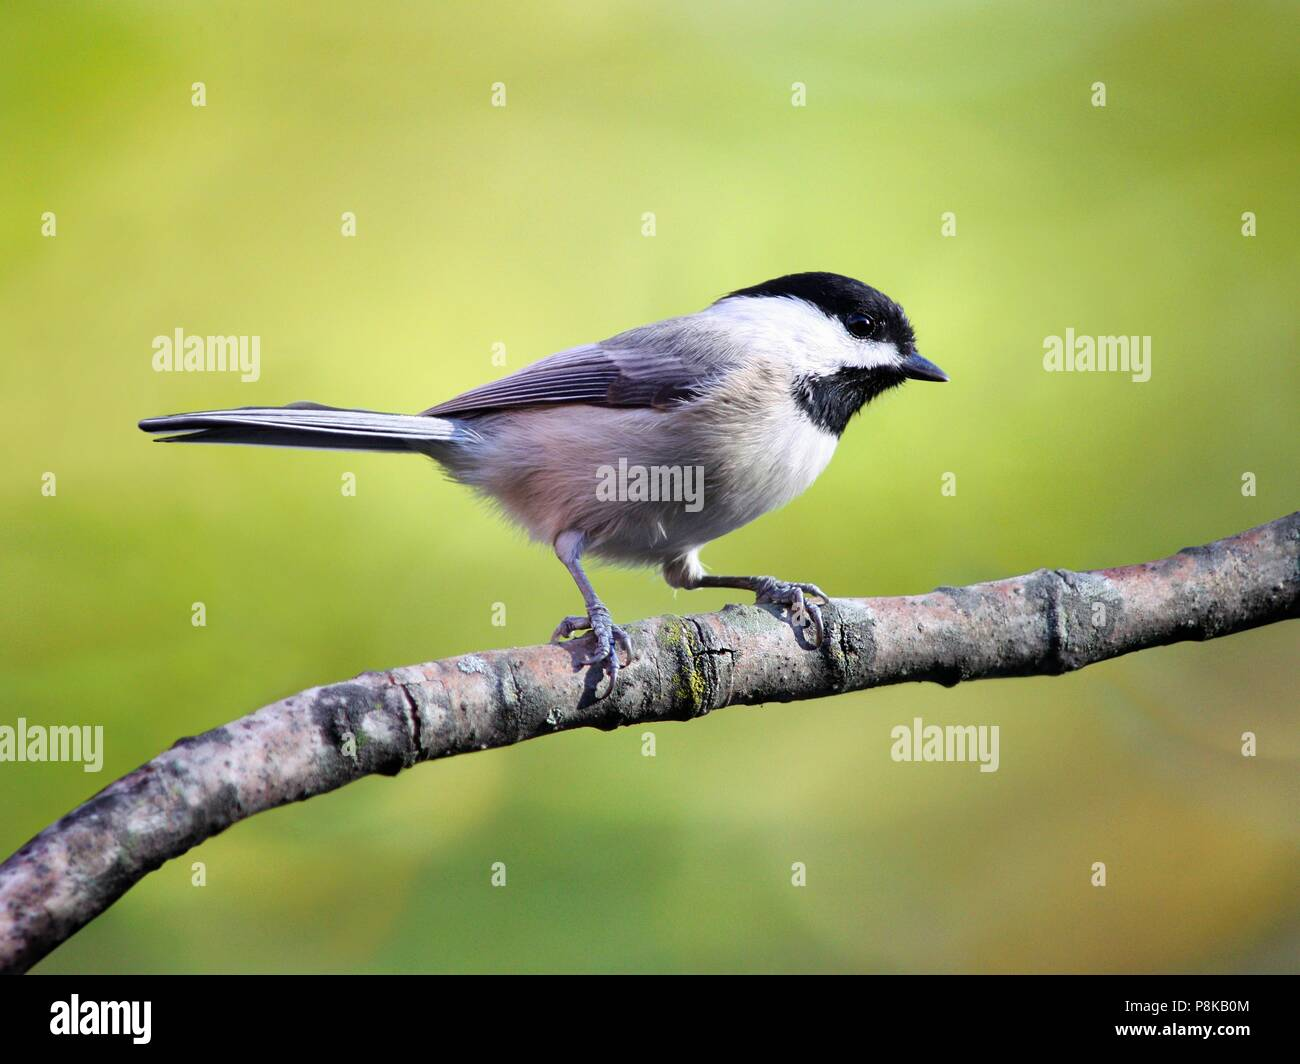 A Carolina chickadee perched on a branch in the early spring. - Stock Image